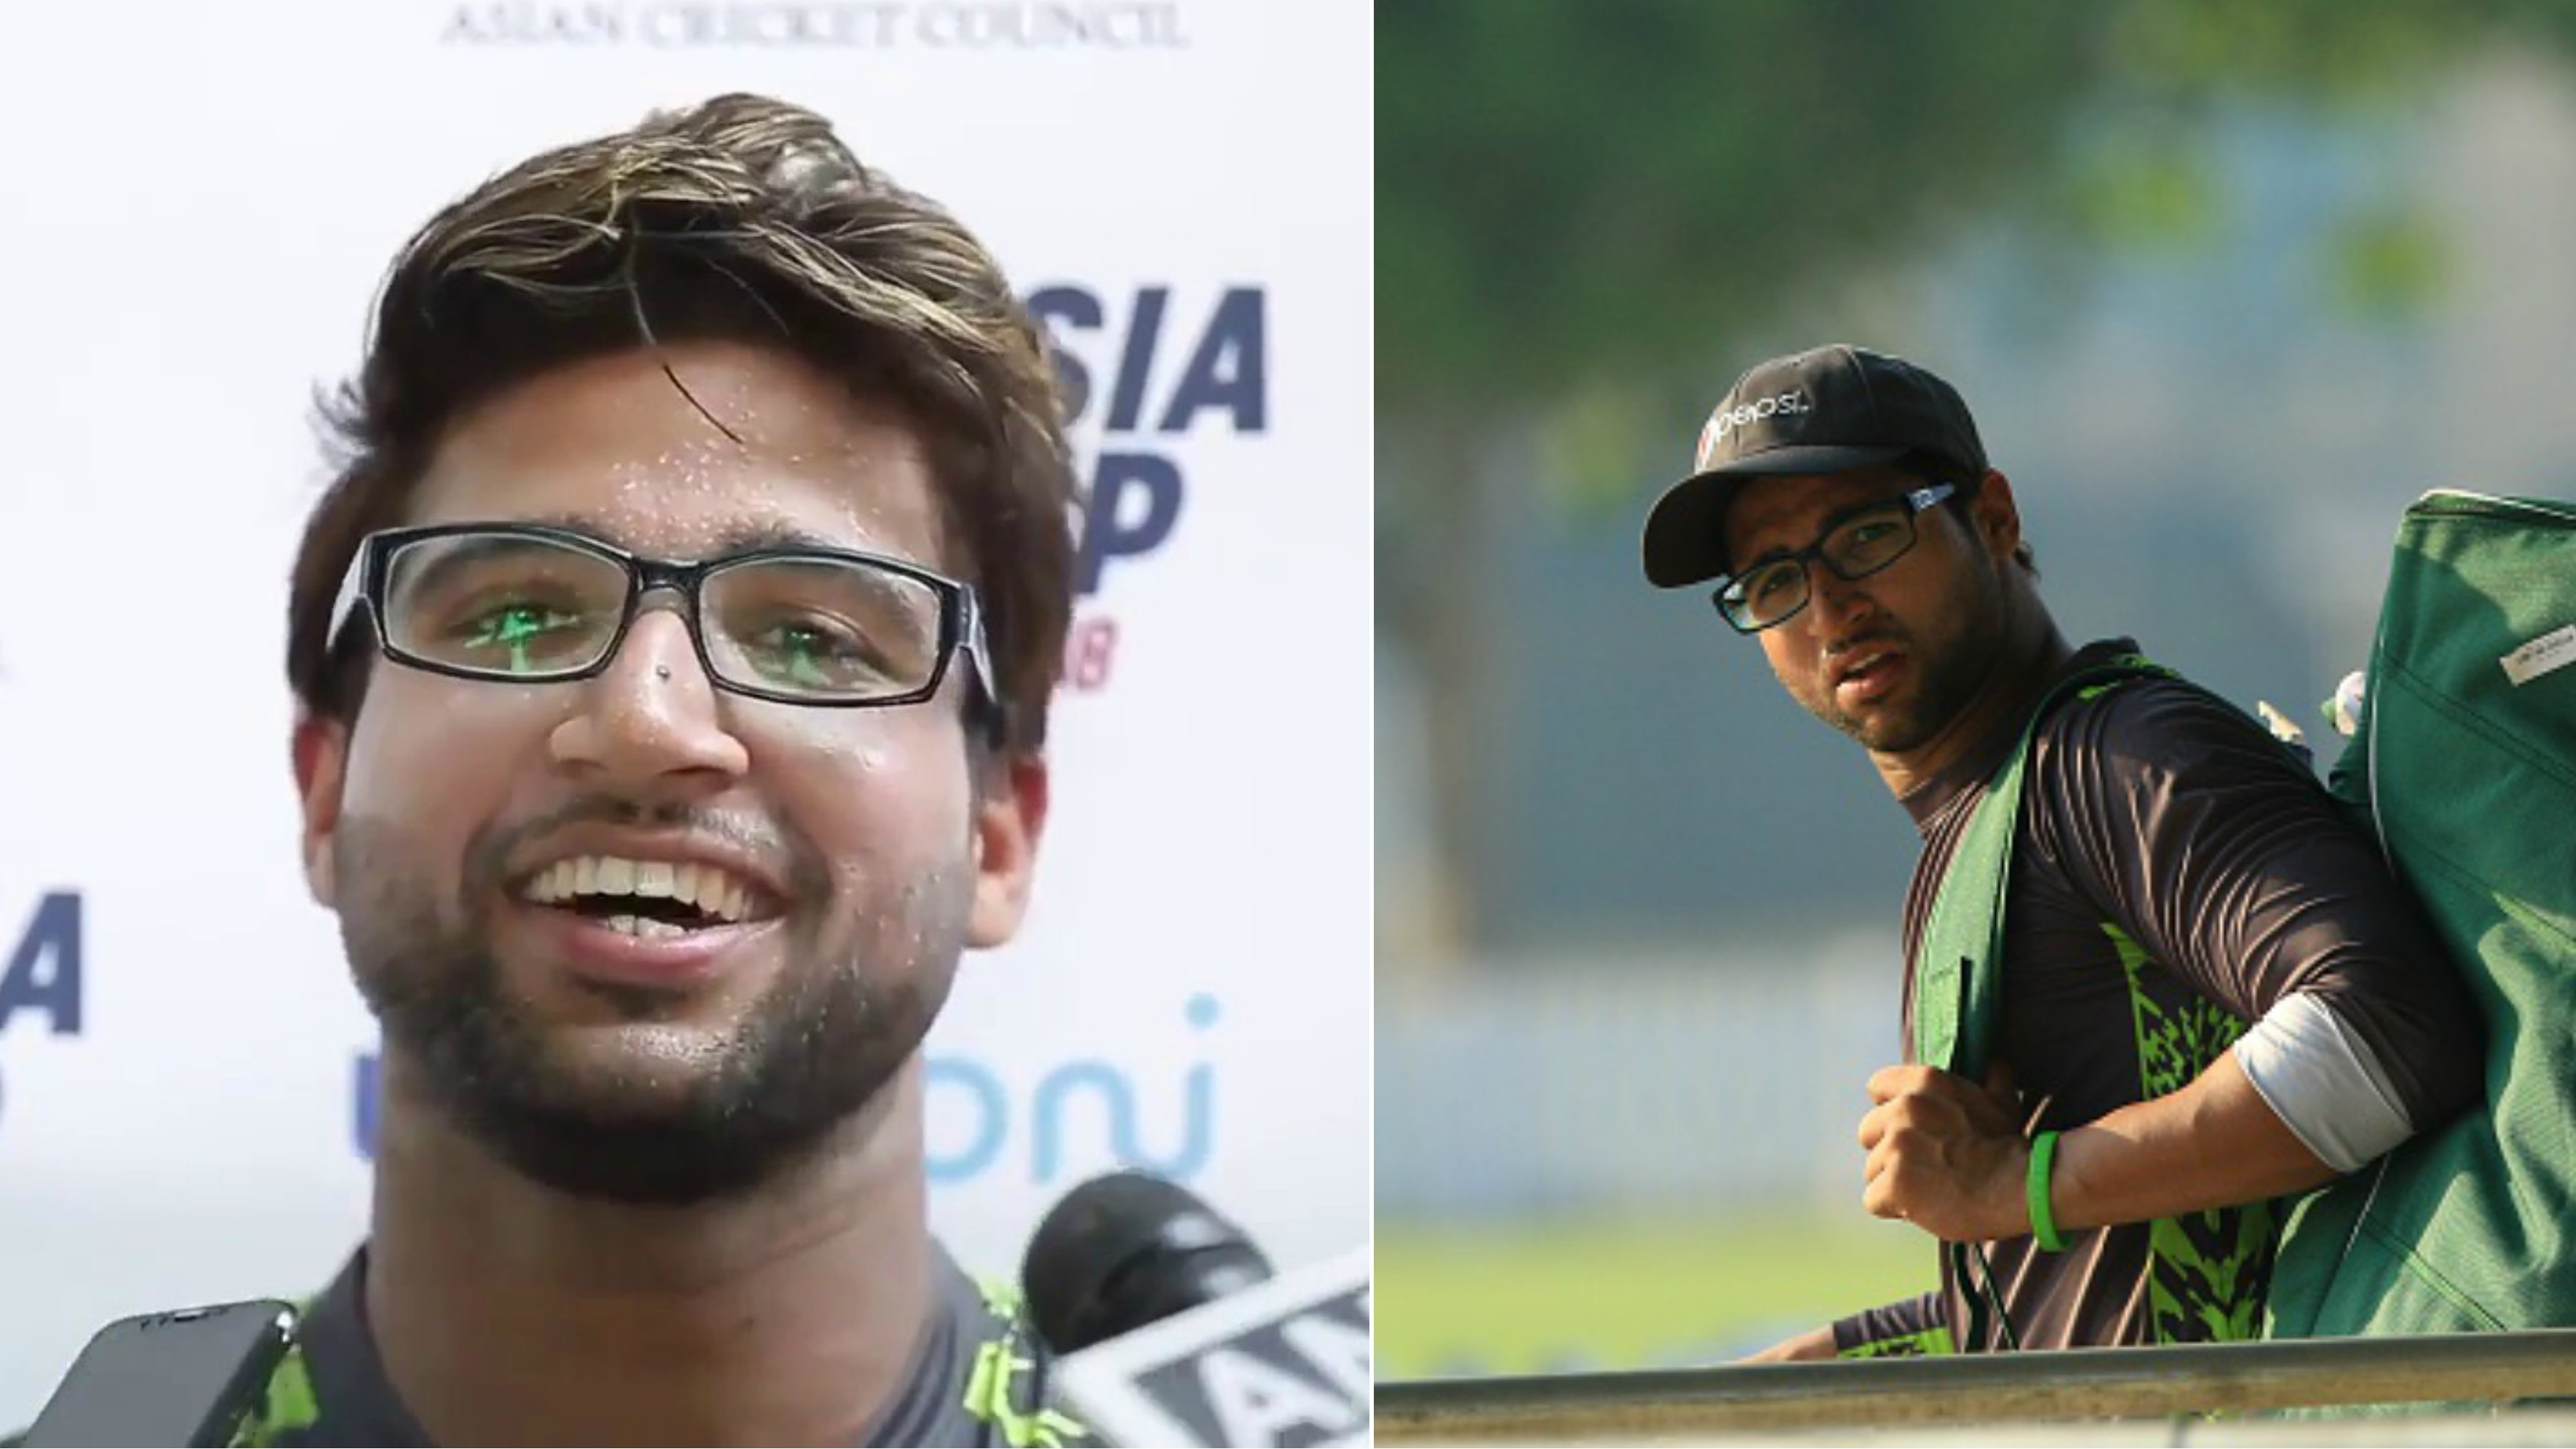 Asia Cup 2018: Imam-ul-Haq came up with a quirky reply to Indian journalist's off-the-wall question